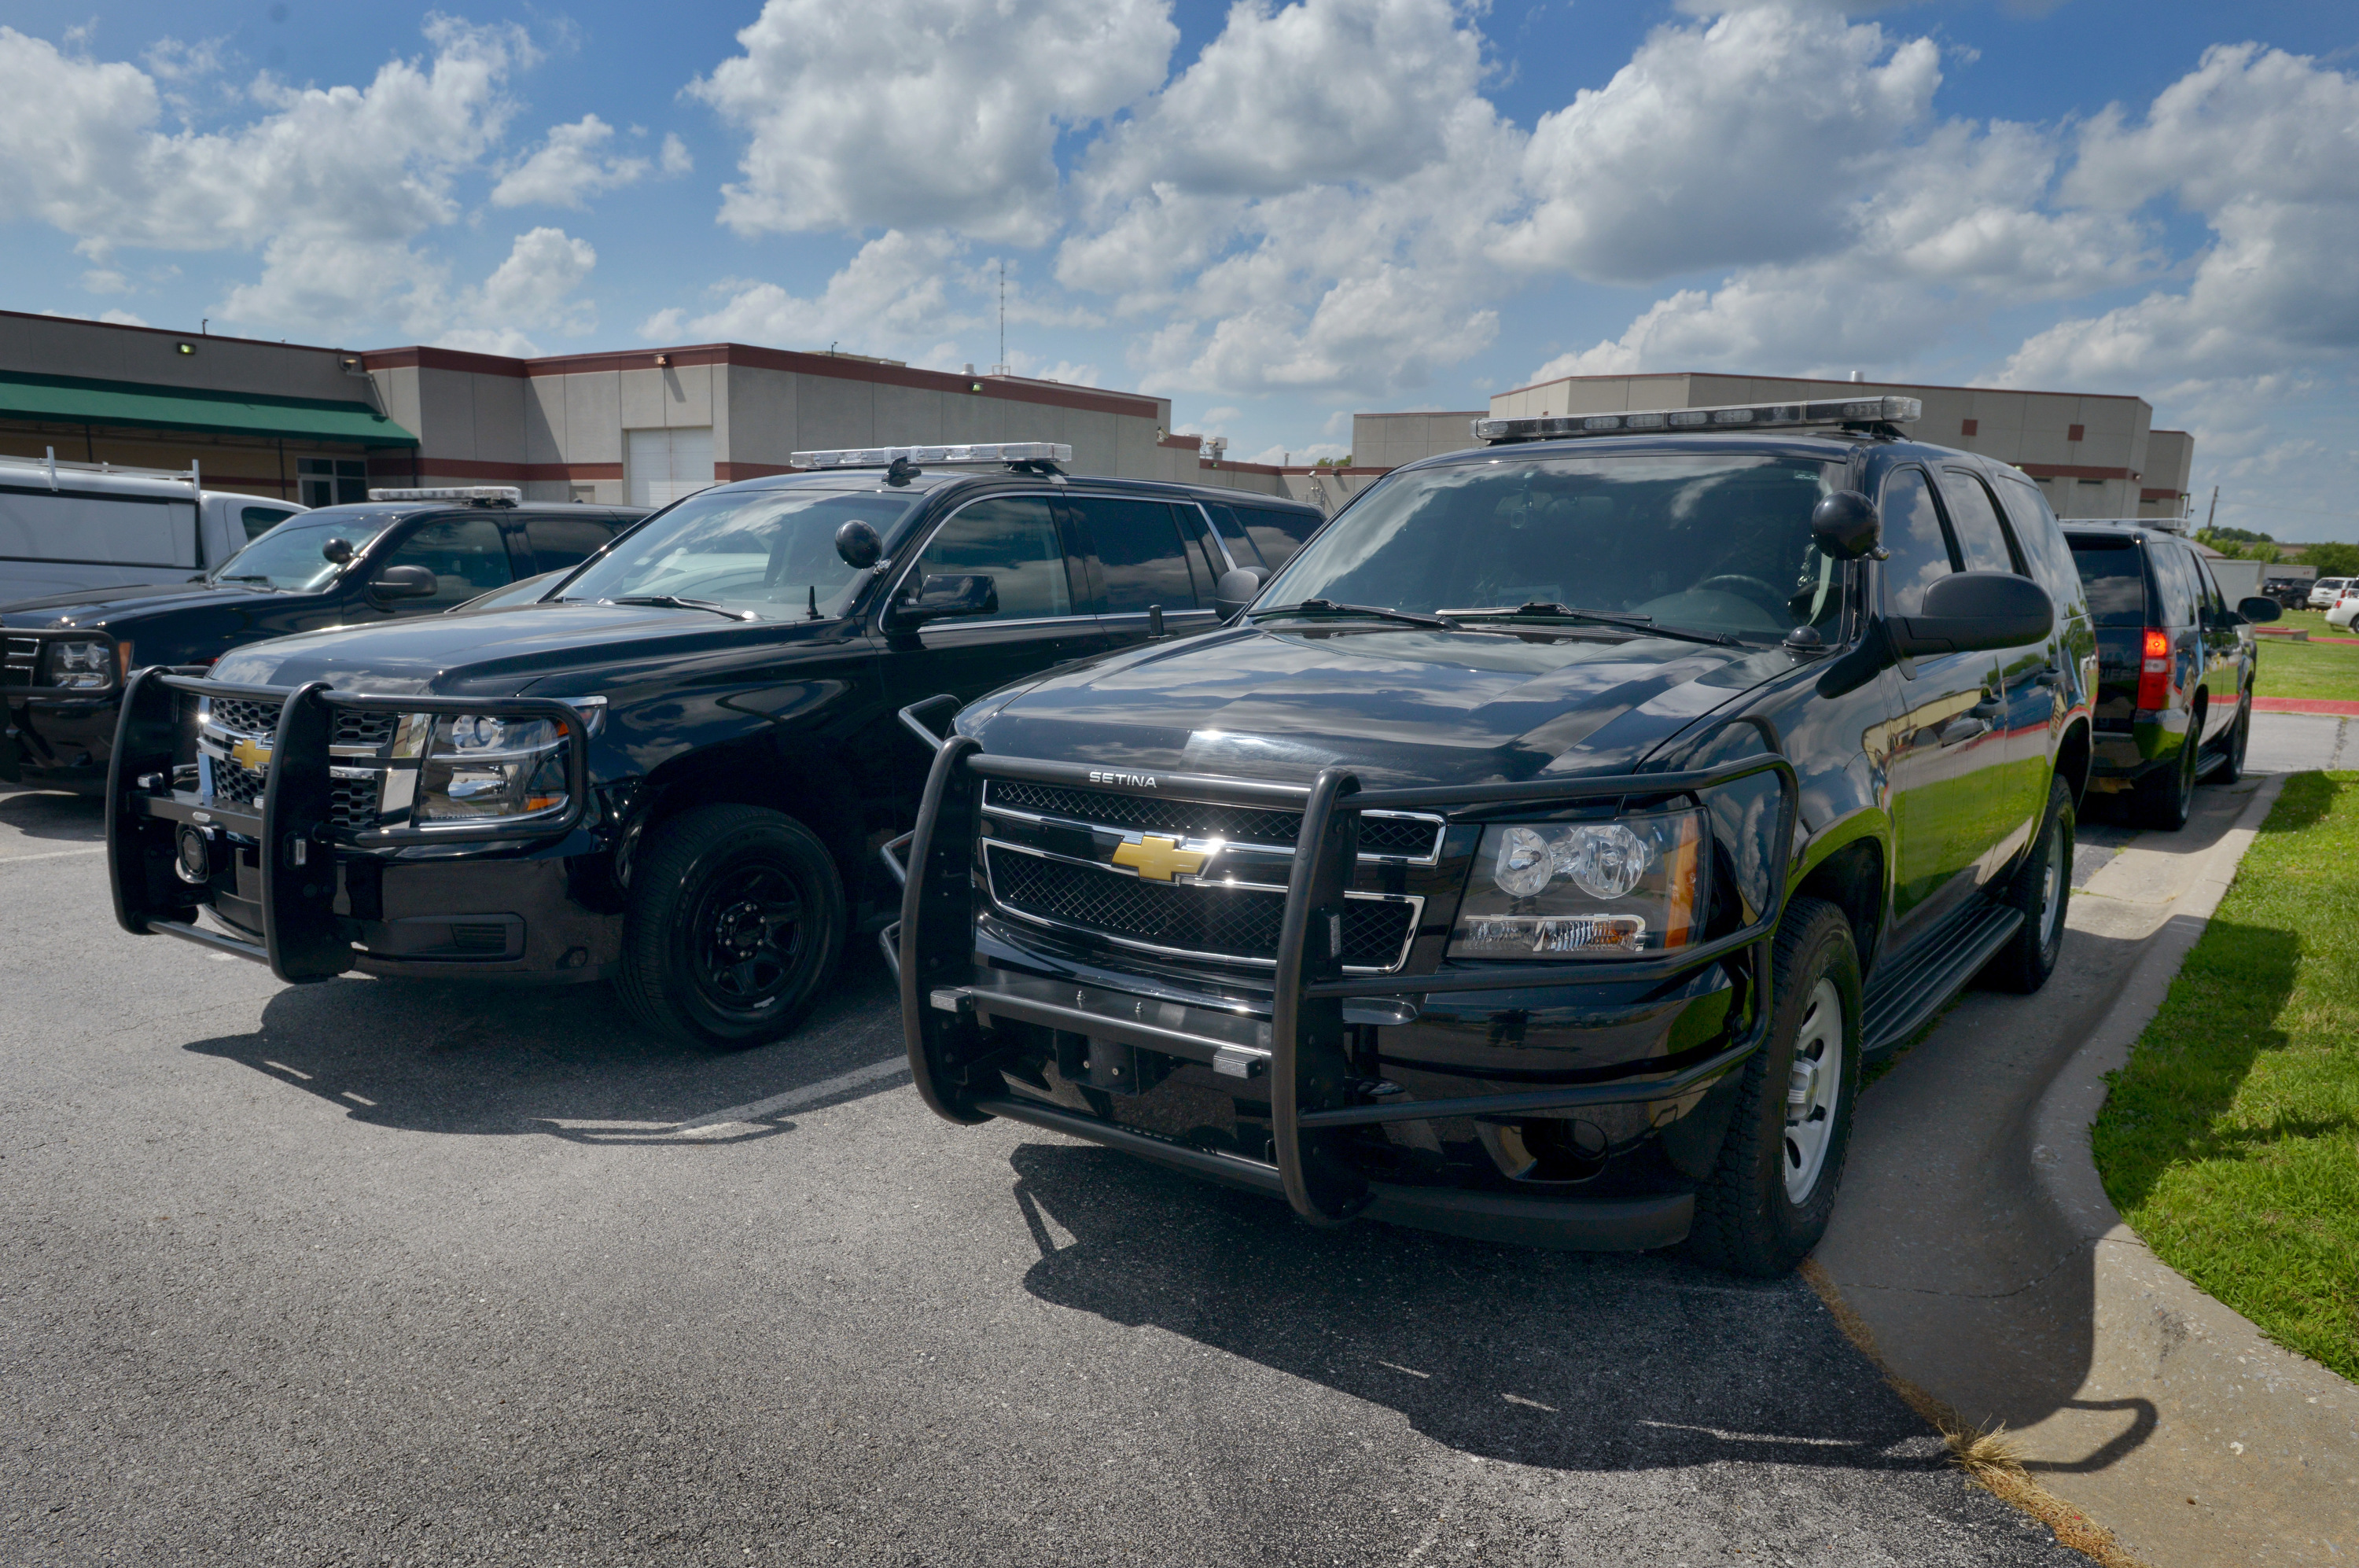 Police vehicles vary in Northwest Arkansas | NWADG